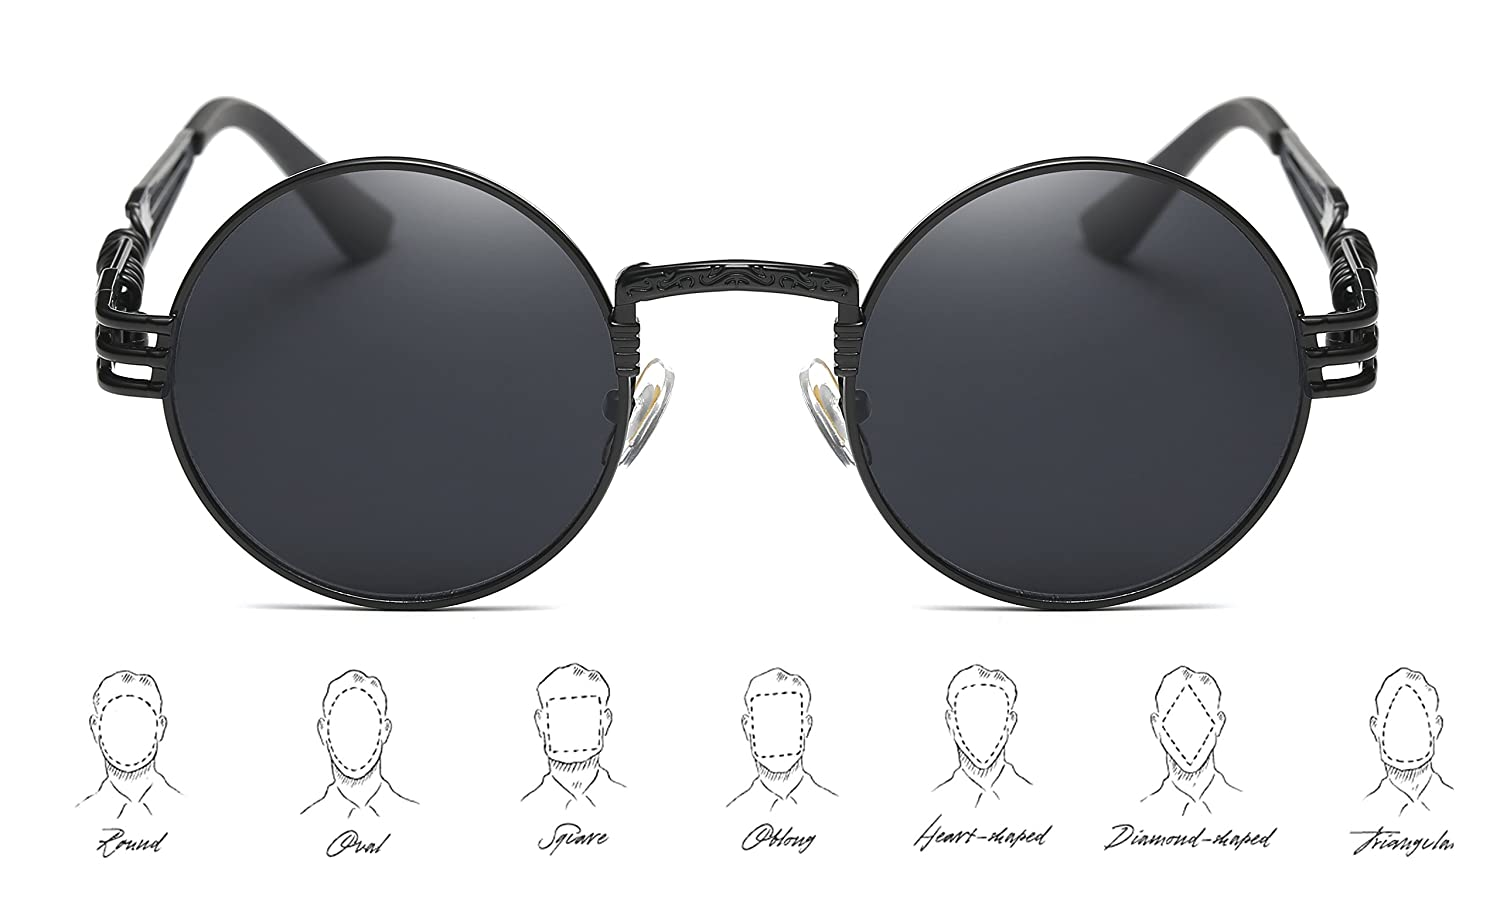 b78b888ea Amazon.com: GAMT John Lennon Glasses Quavo Steampunk Round Sunglasses Circle  Metal Frame Eyewear for Men and Women Black Frame Grey Lens: Shoes